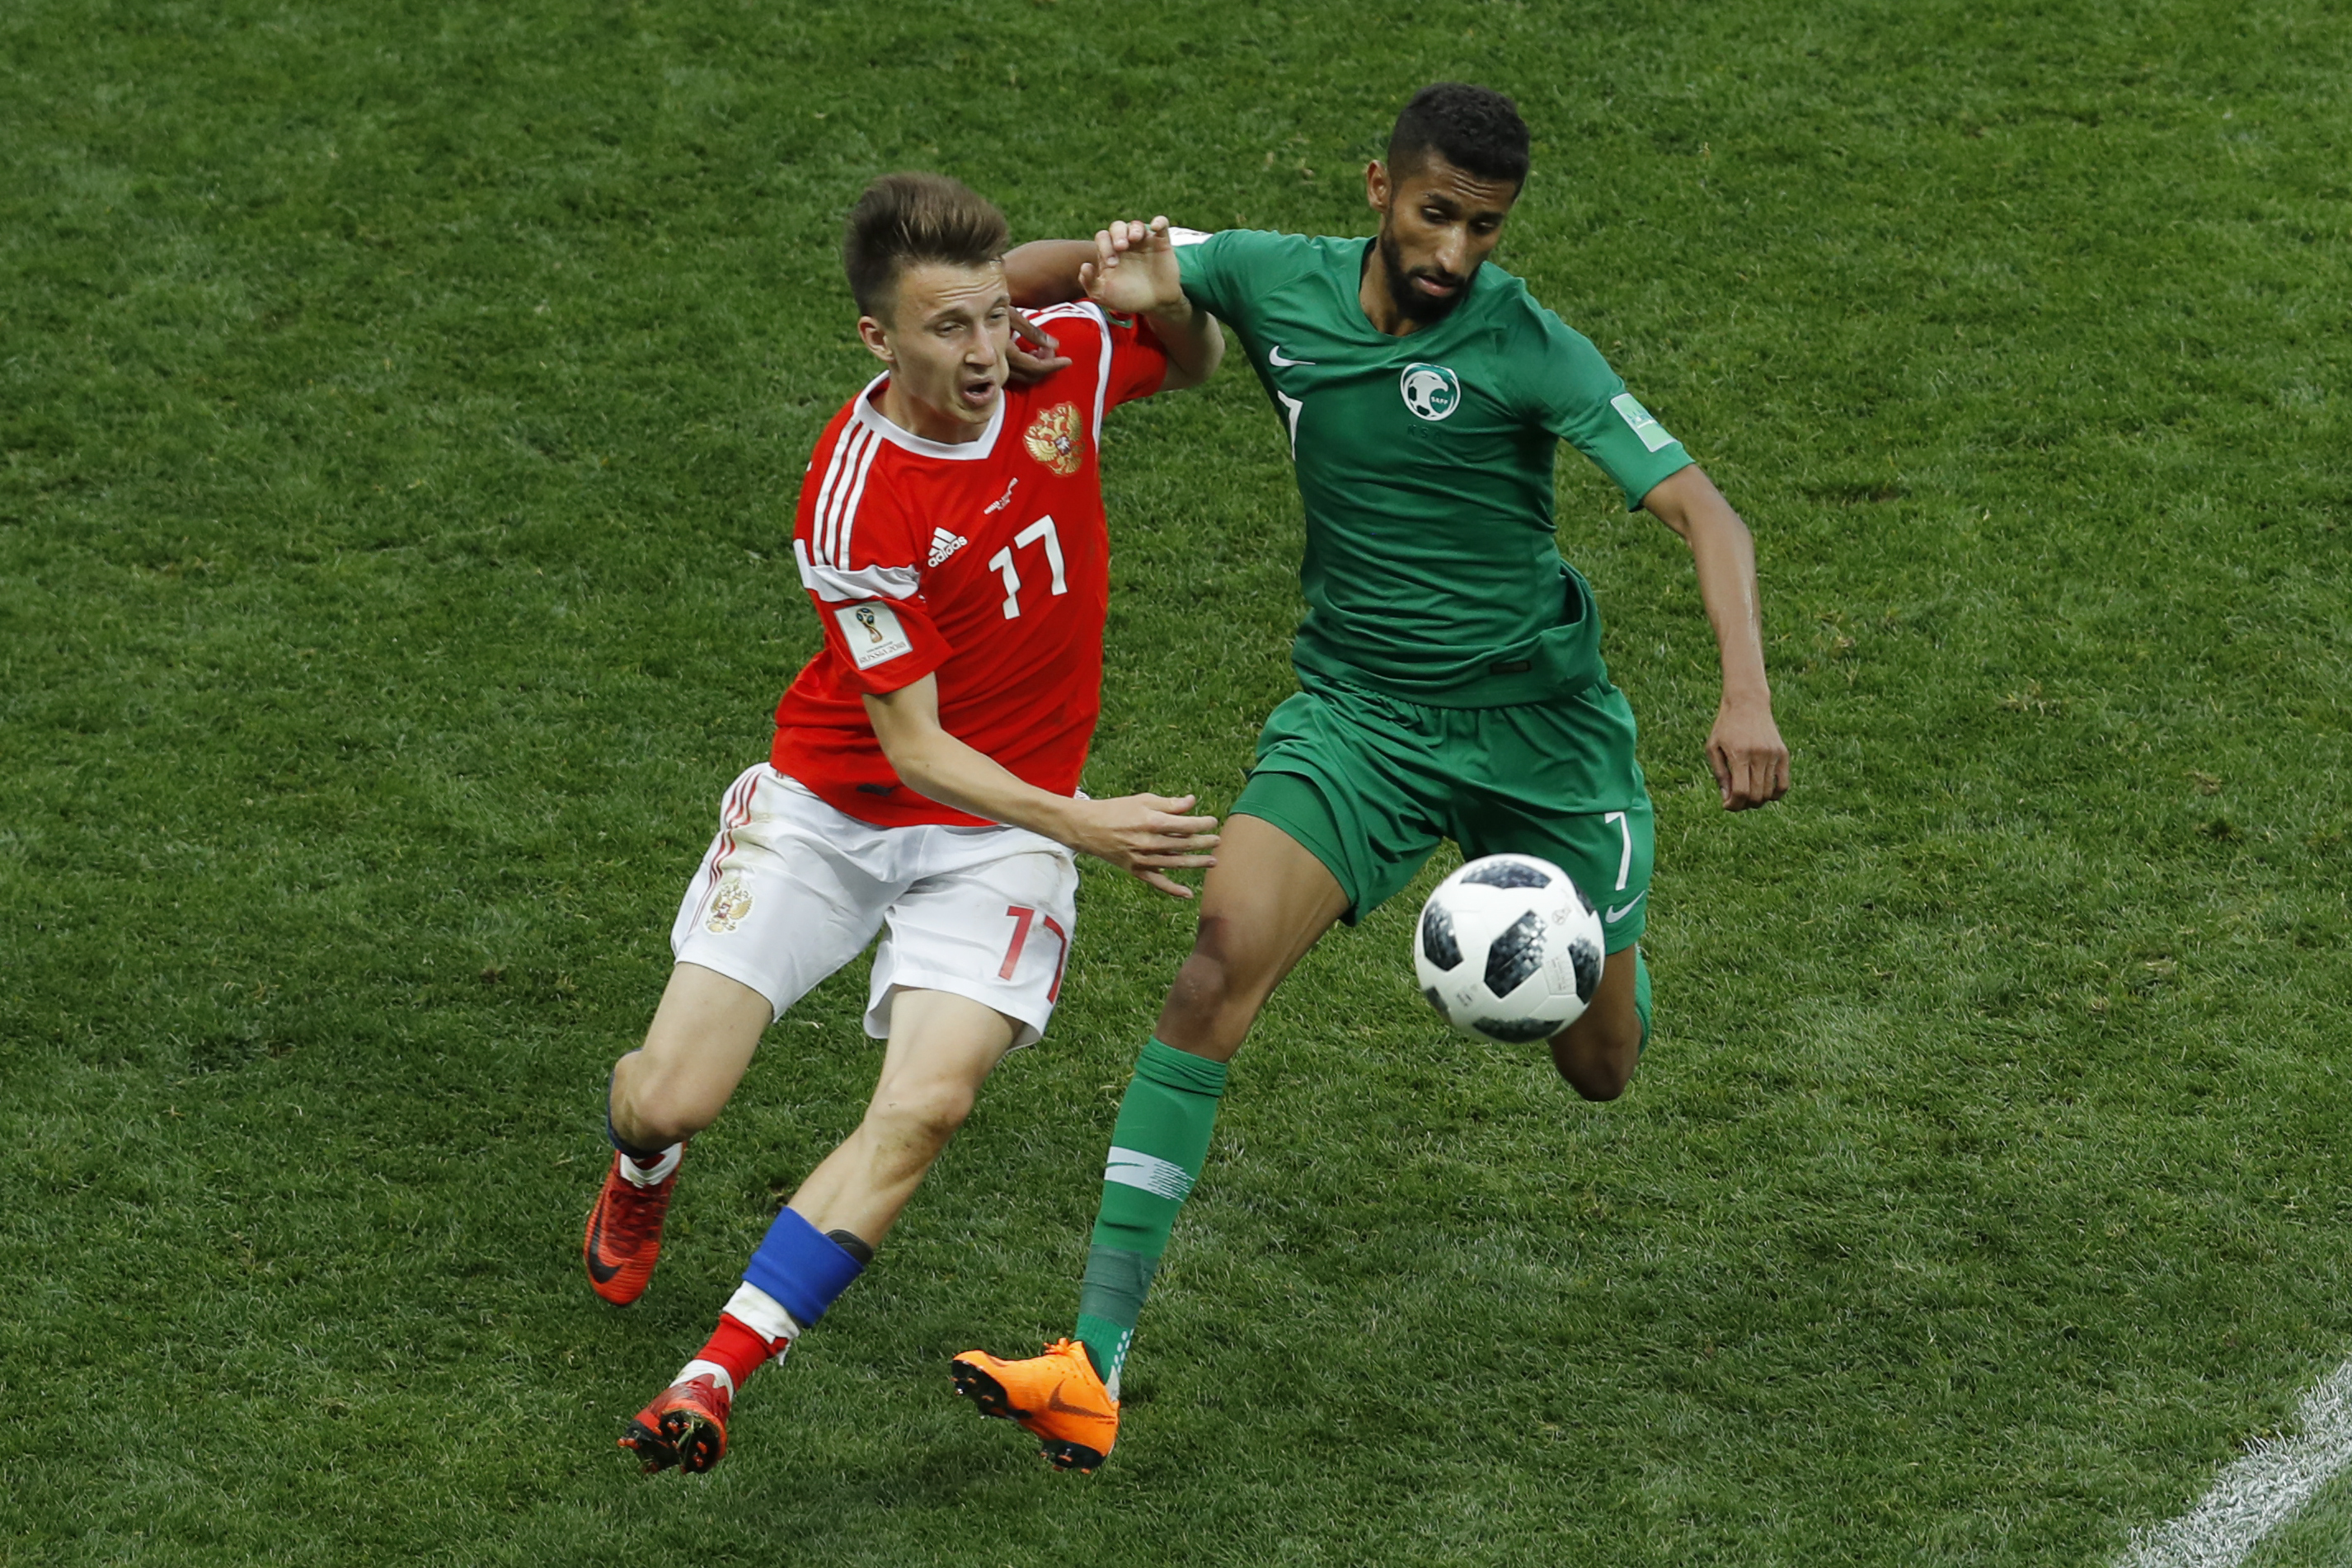 Russia and Saudi Arabia contest the first game of the 2018 World Cup